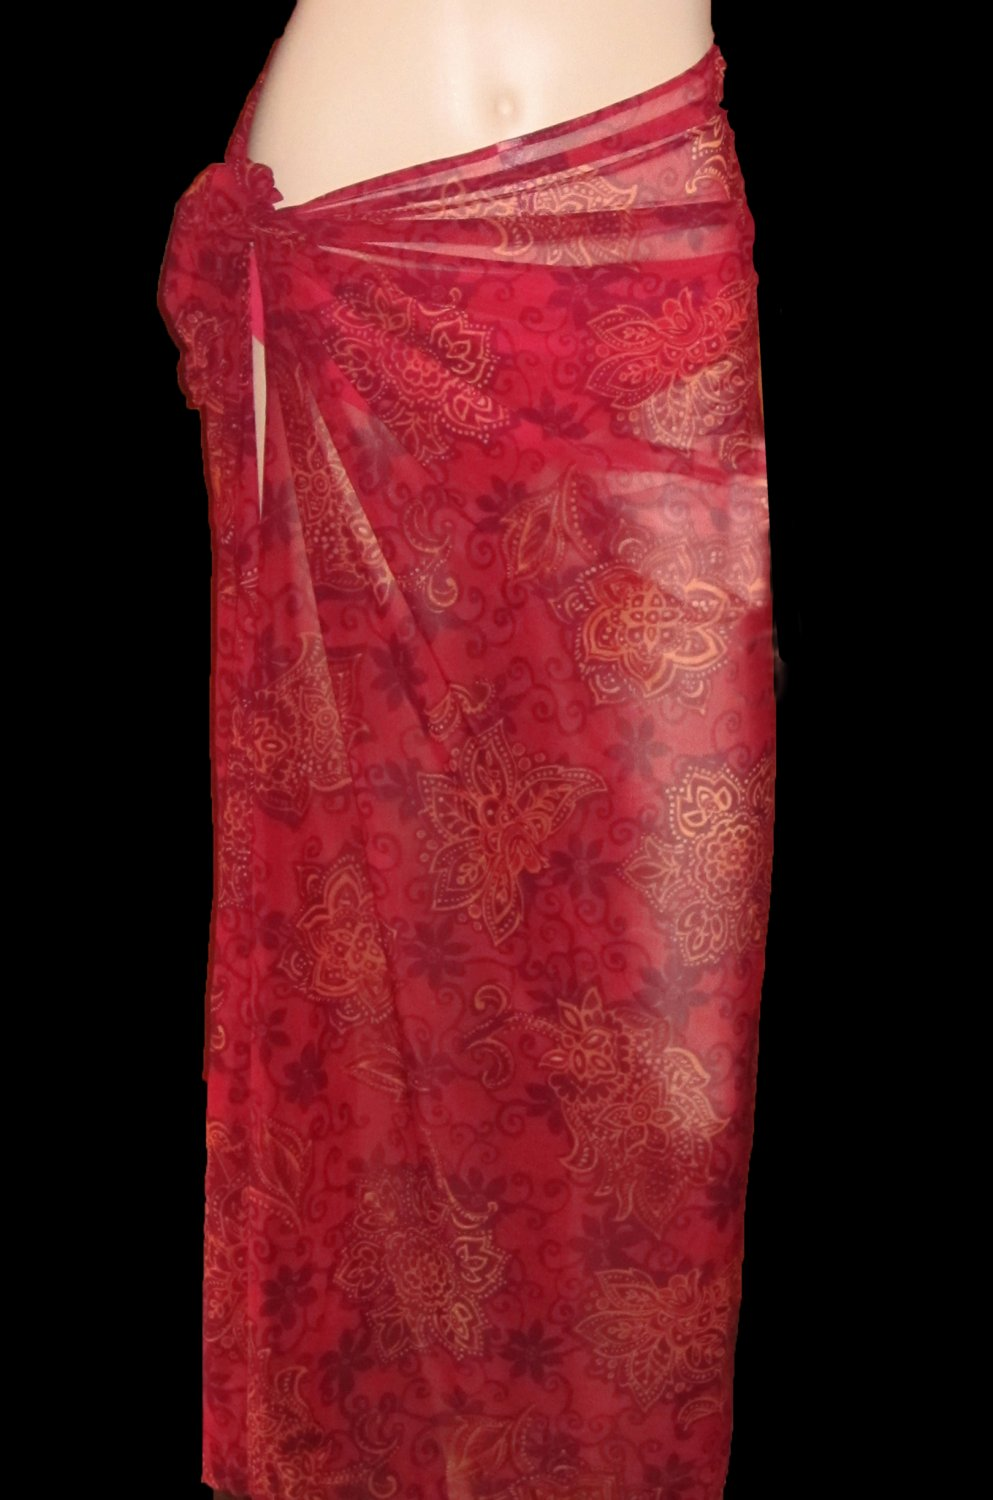 Victoria's Secret Red Sarong Long Skirt Cover-up XS Small 195622